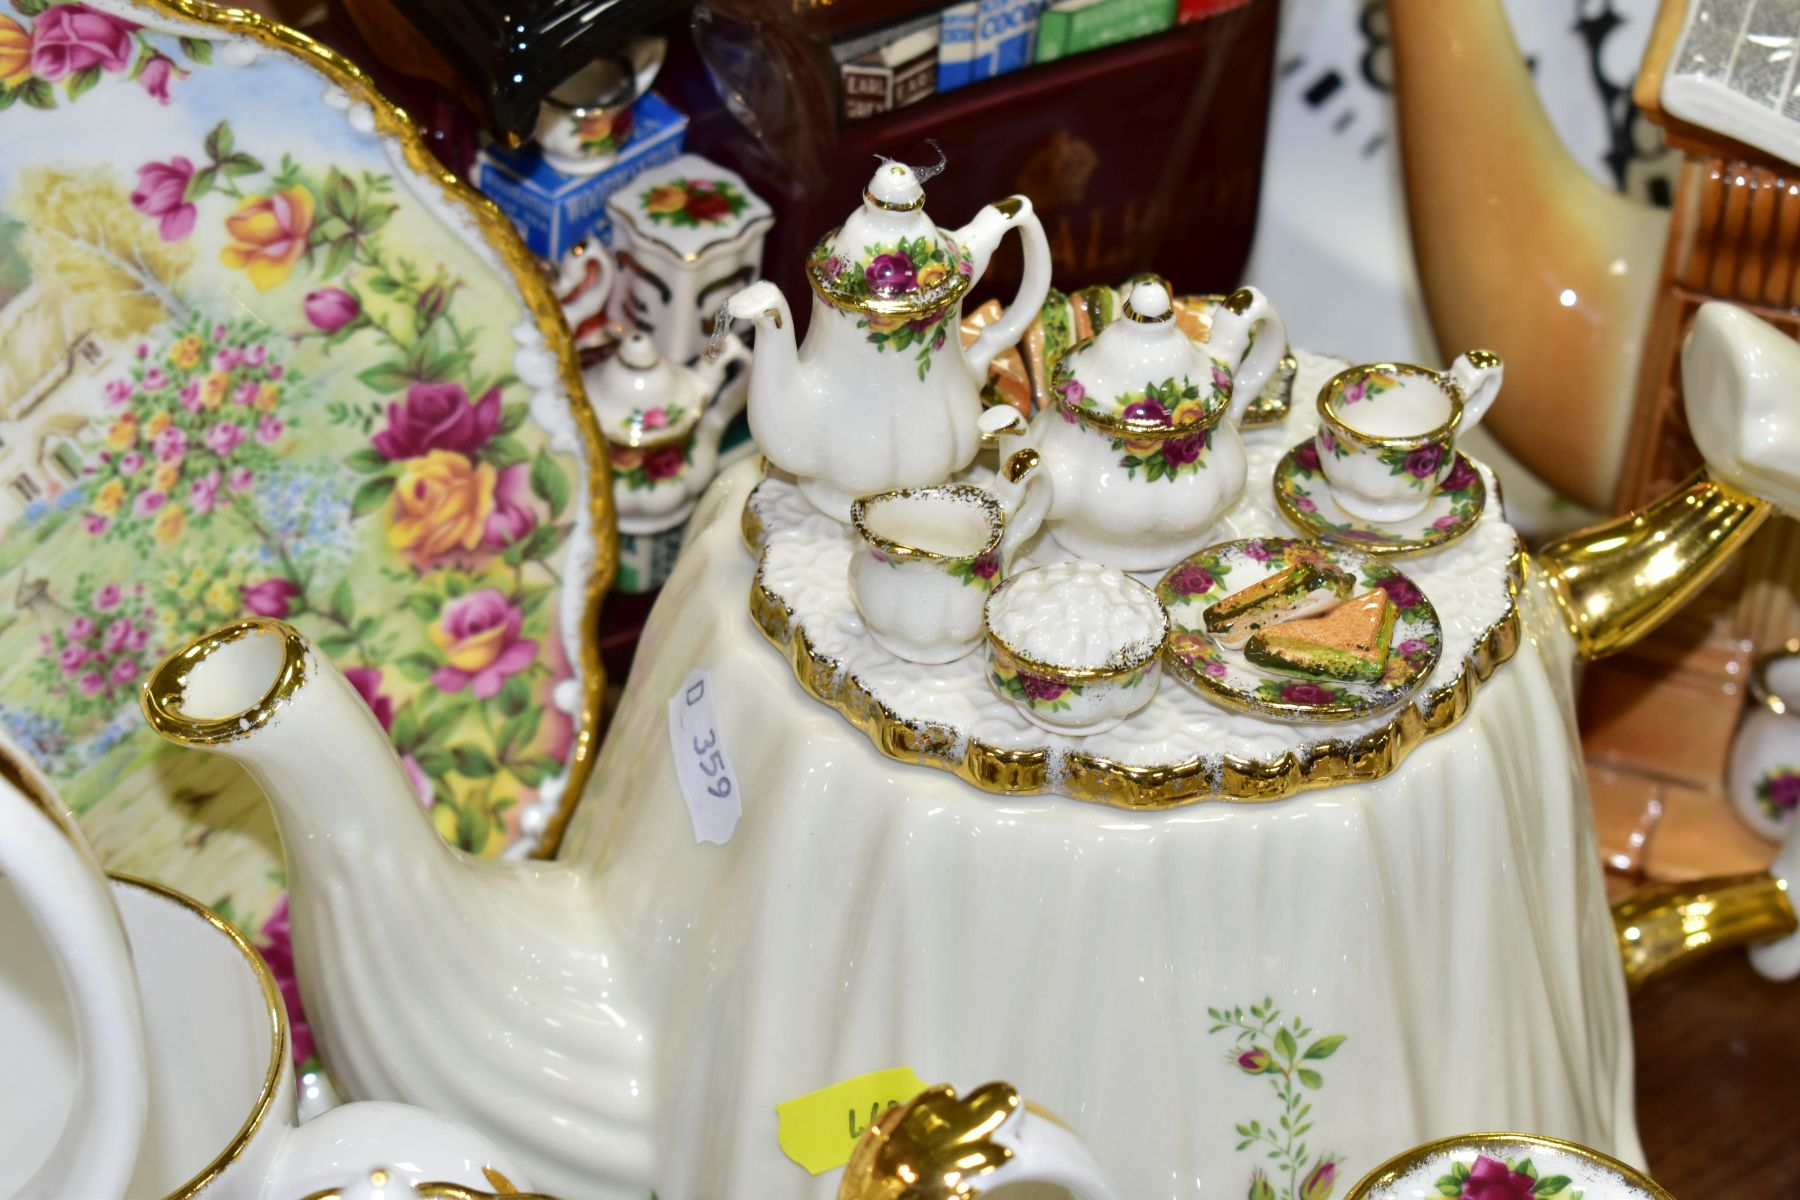 ROYAL ALBERT 'OLD COUNTRY ROSES' DINNER/TEA WARES, NOVELTY TEAPOTS AND TRINKETS, comprising two - Image 7 of 12